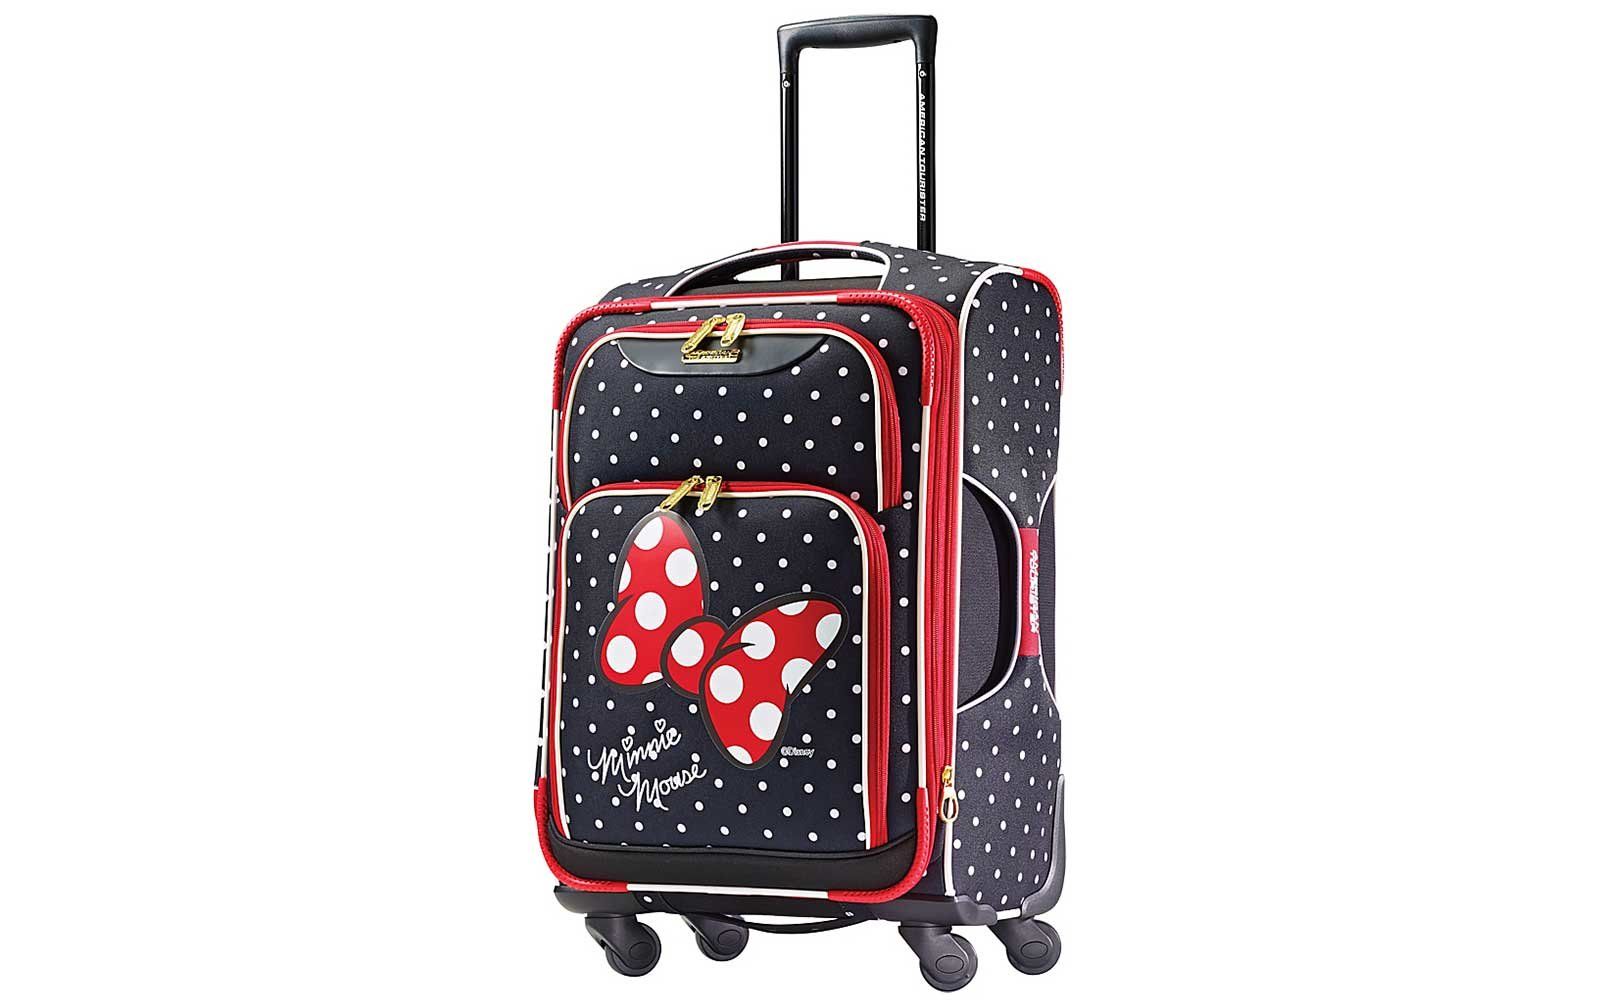 American Tourister Soft-sided Suitcase, Disney Collection